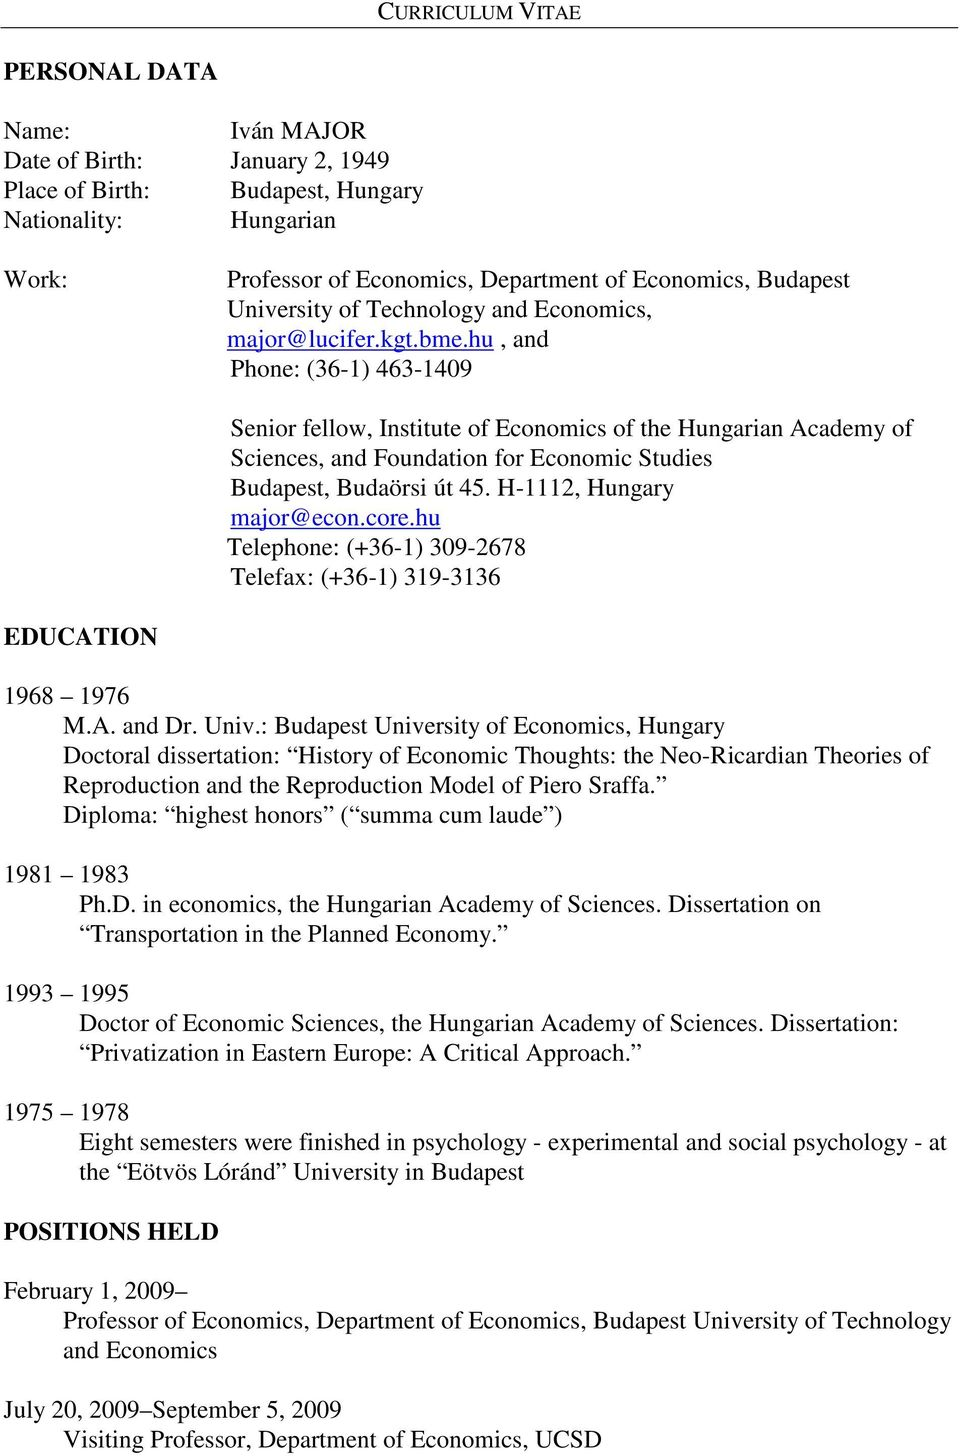 hu, and Phone: (36-1) 463-1409 Senior fellow, Institute of Economics of the Hungarian Academy of Sciences, and Foundation for Economic Studies Budapest, Budaörsi út 45. H-1112, Hungary major@econ.